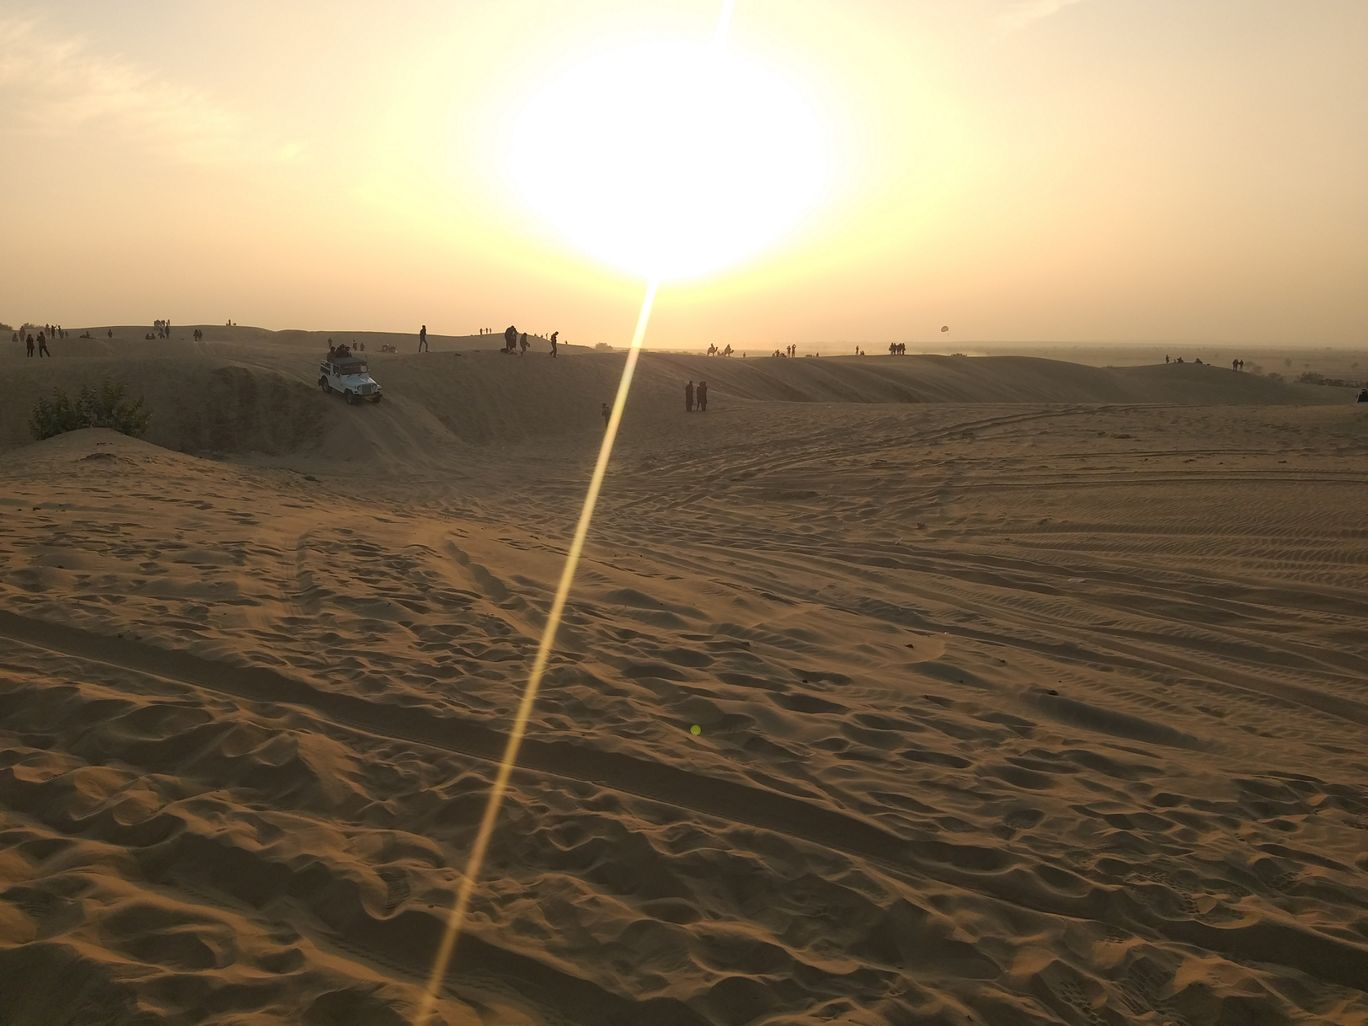 Photo of Sam Sand Dunes Jaisalmer By Tapan sharma